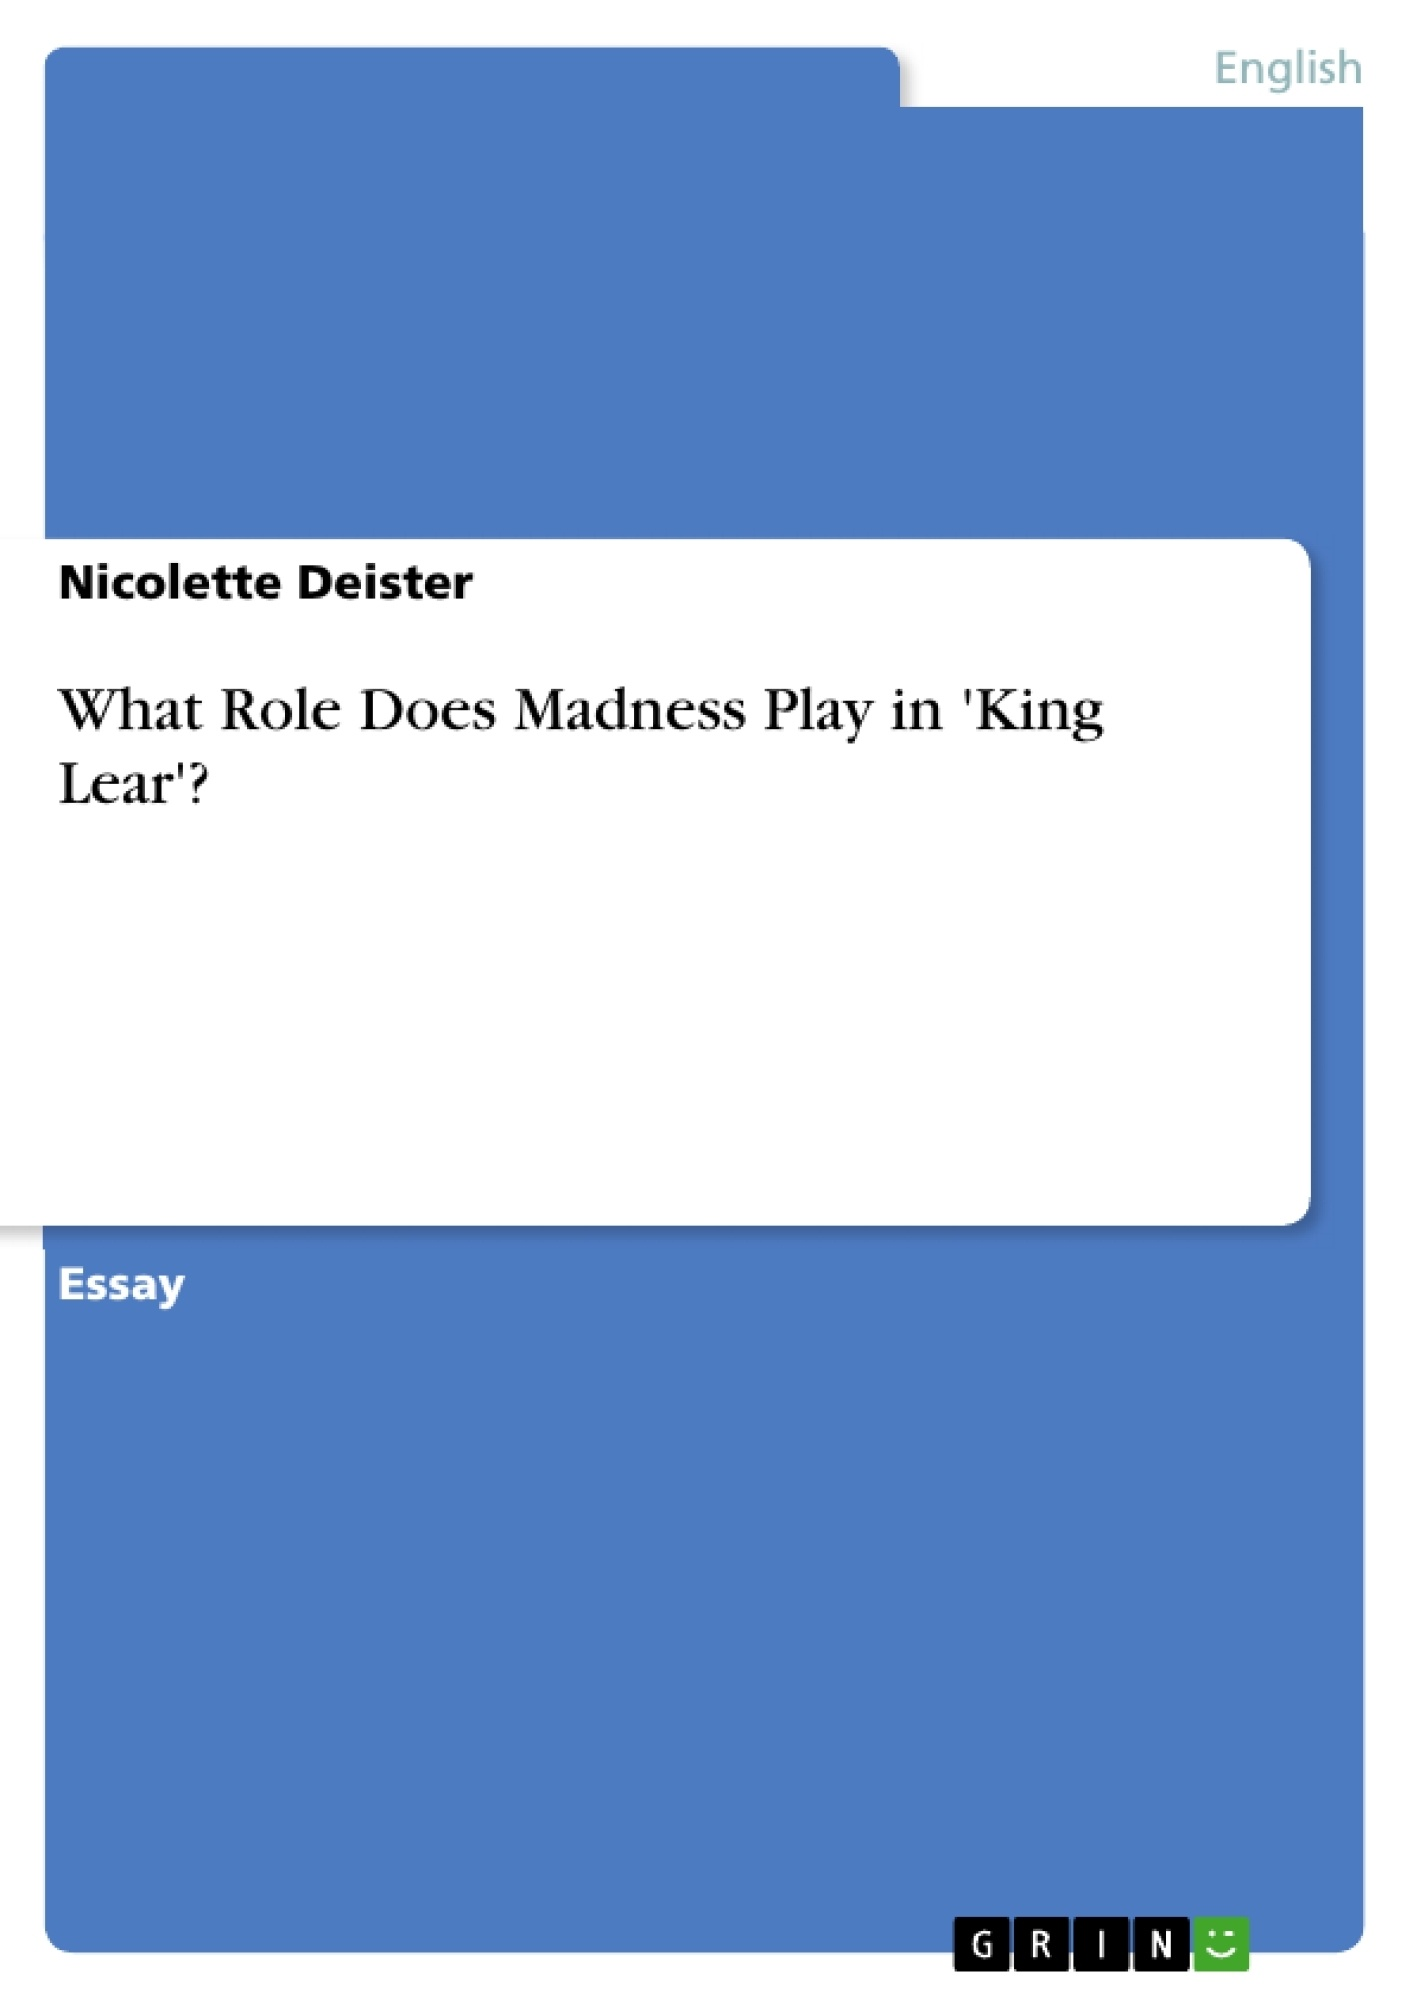 What is the significance of king s Lear madness? | King - GradeSaver